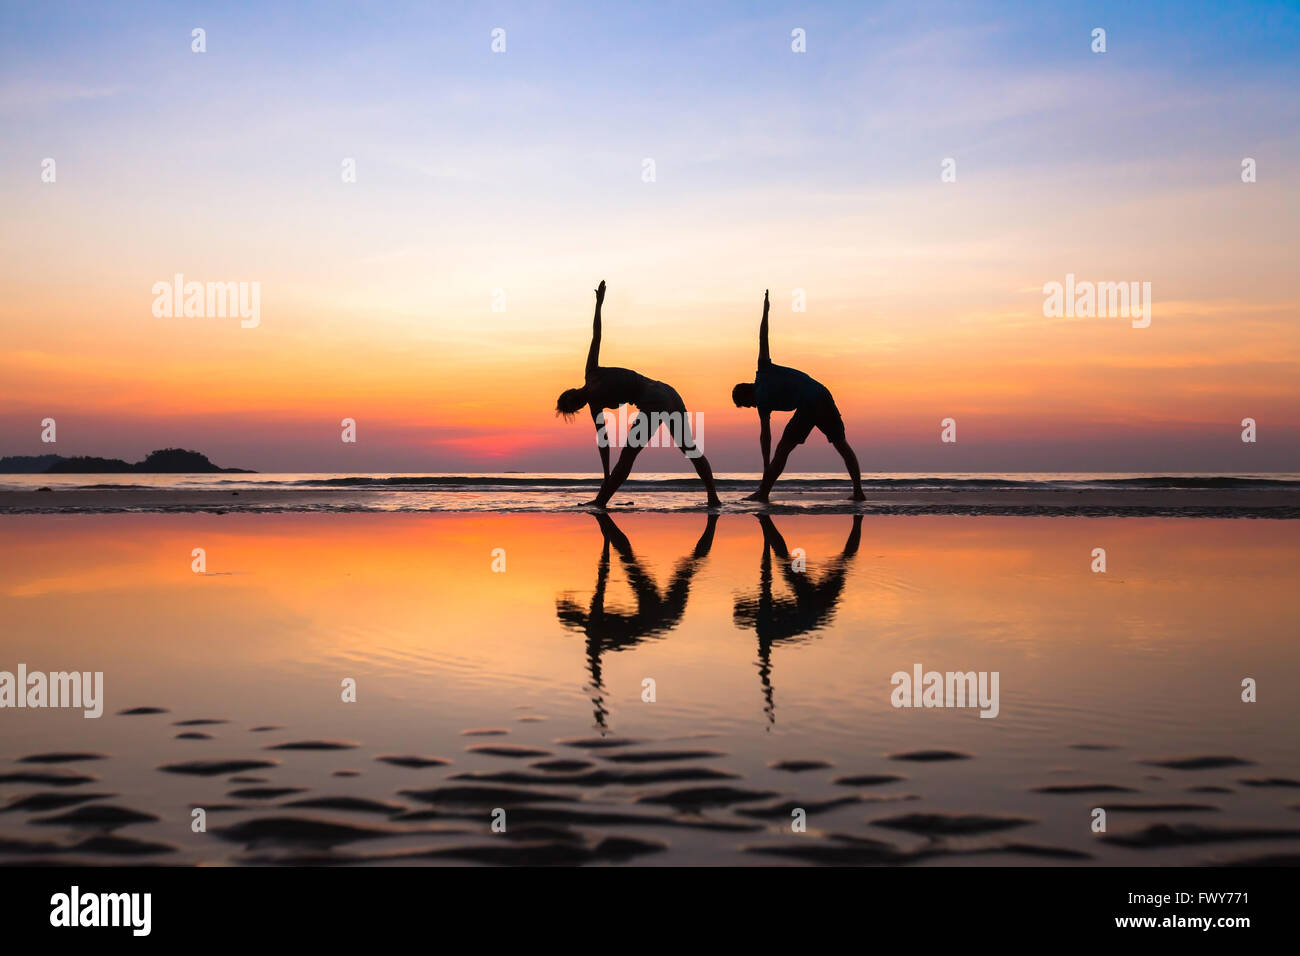 stretchings on the beach at sunset, yoga exercises, silhouettes of couple - Stock Image